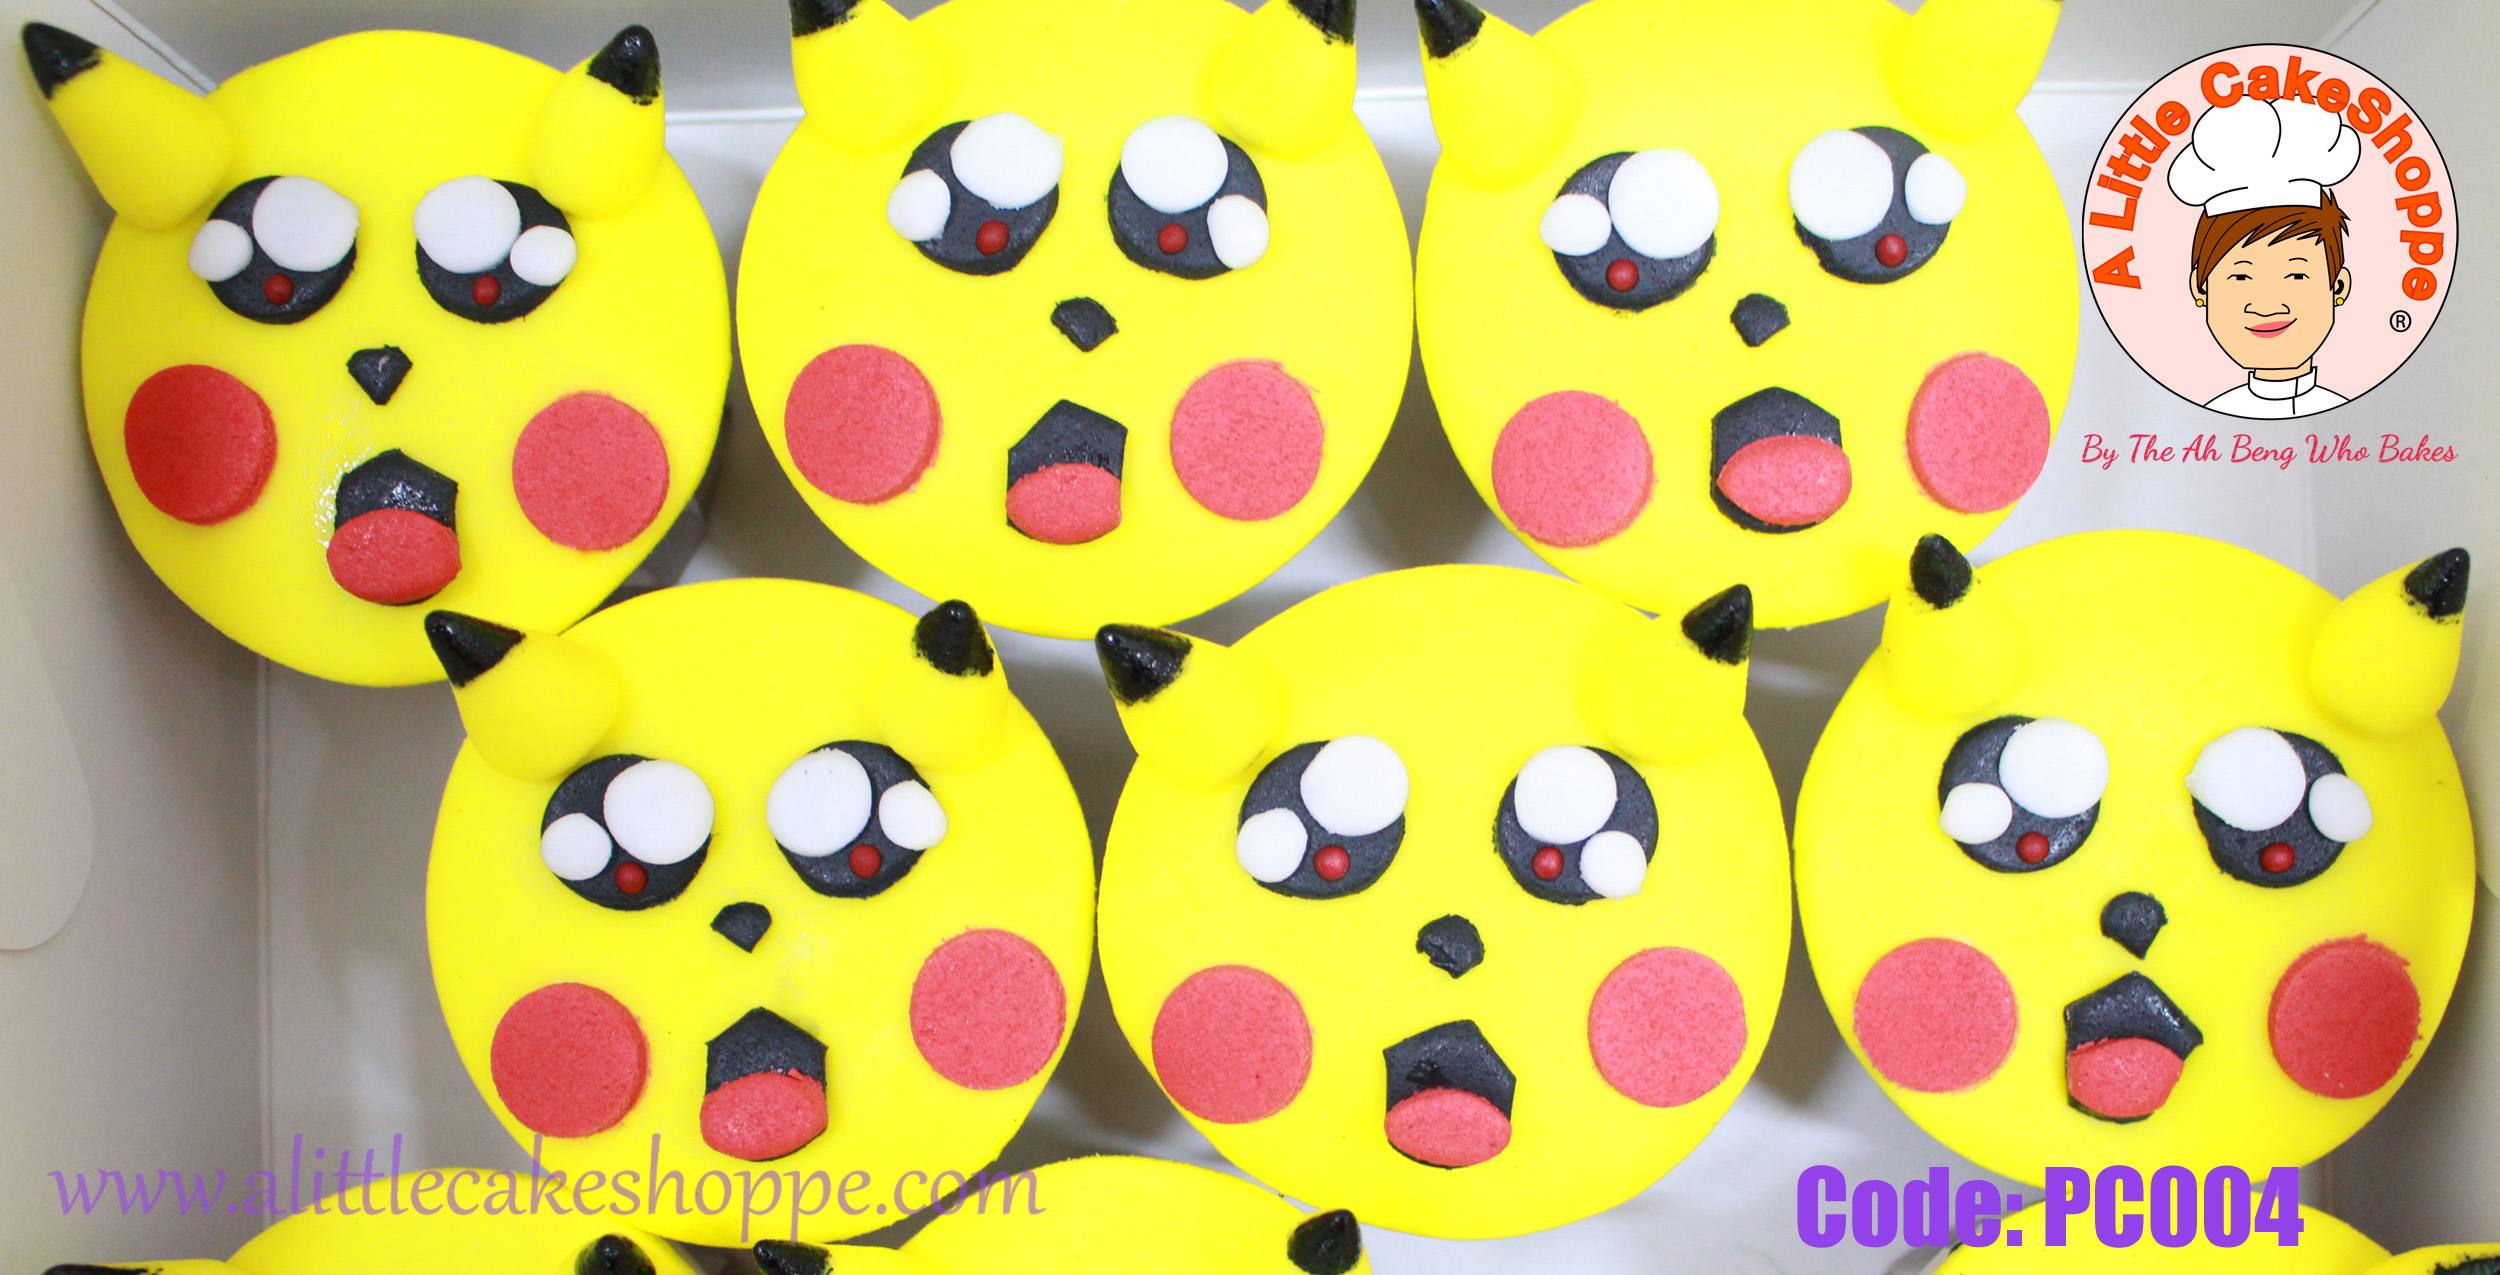 Best Customised Cake Shop Singapore custom cake 2D 3D birthday cake cupcakes desserts wedding corporate events anniversary 1st birthday 21st birthday fondant fresh cream buttercream cakes alittlecakeshoppe a little cake shoppe compliments review singapore bakers SG cake shop cakeshop ah beng who bakes pokemon pikachu